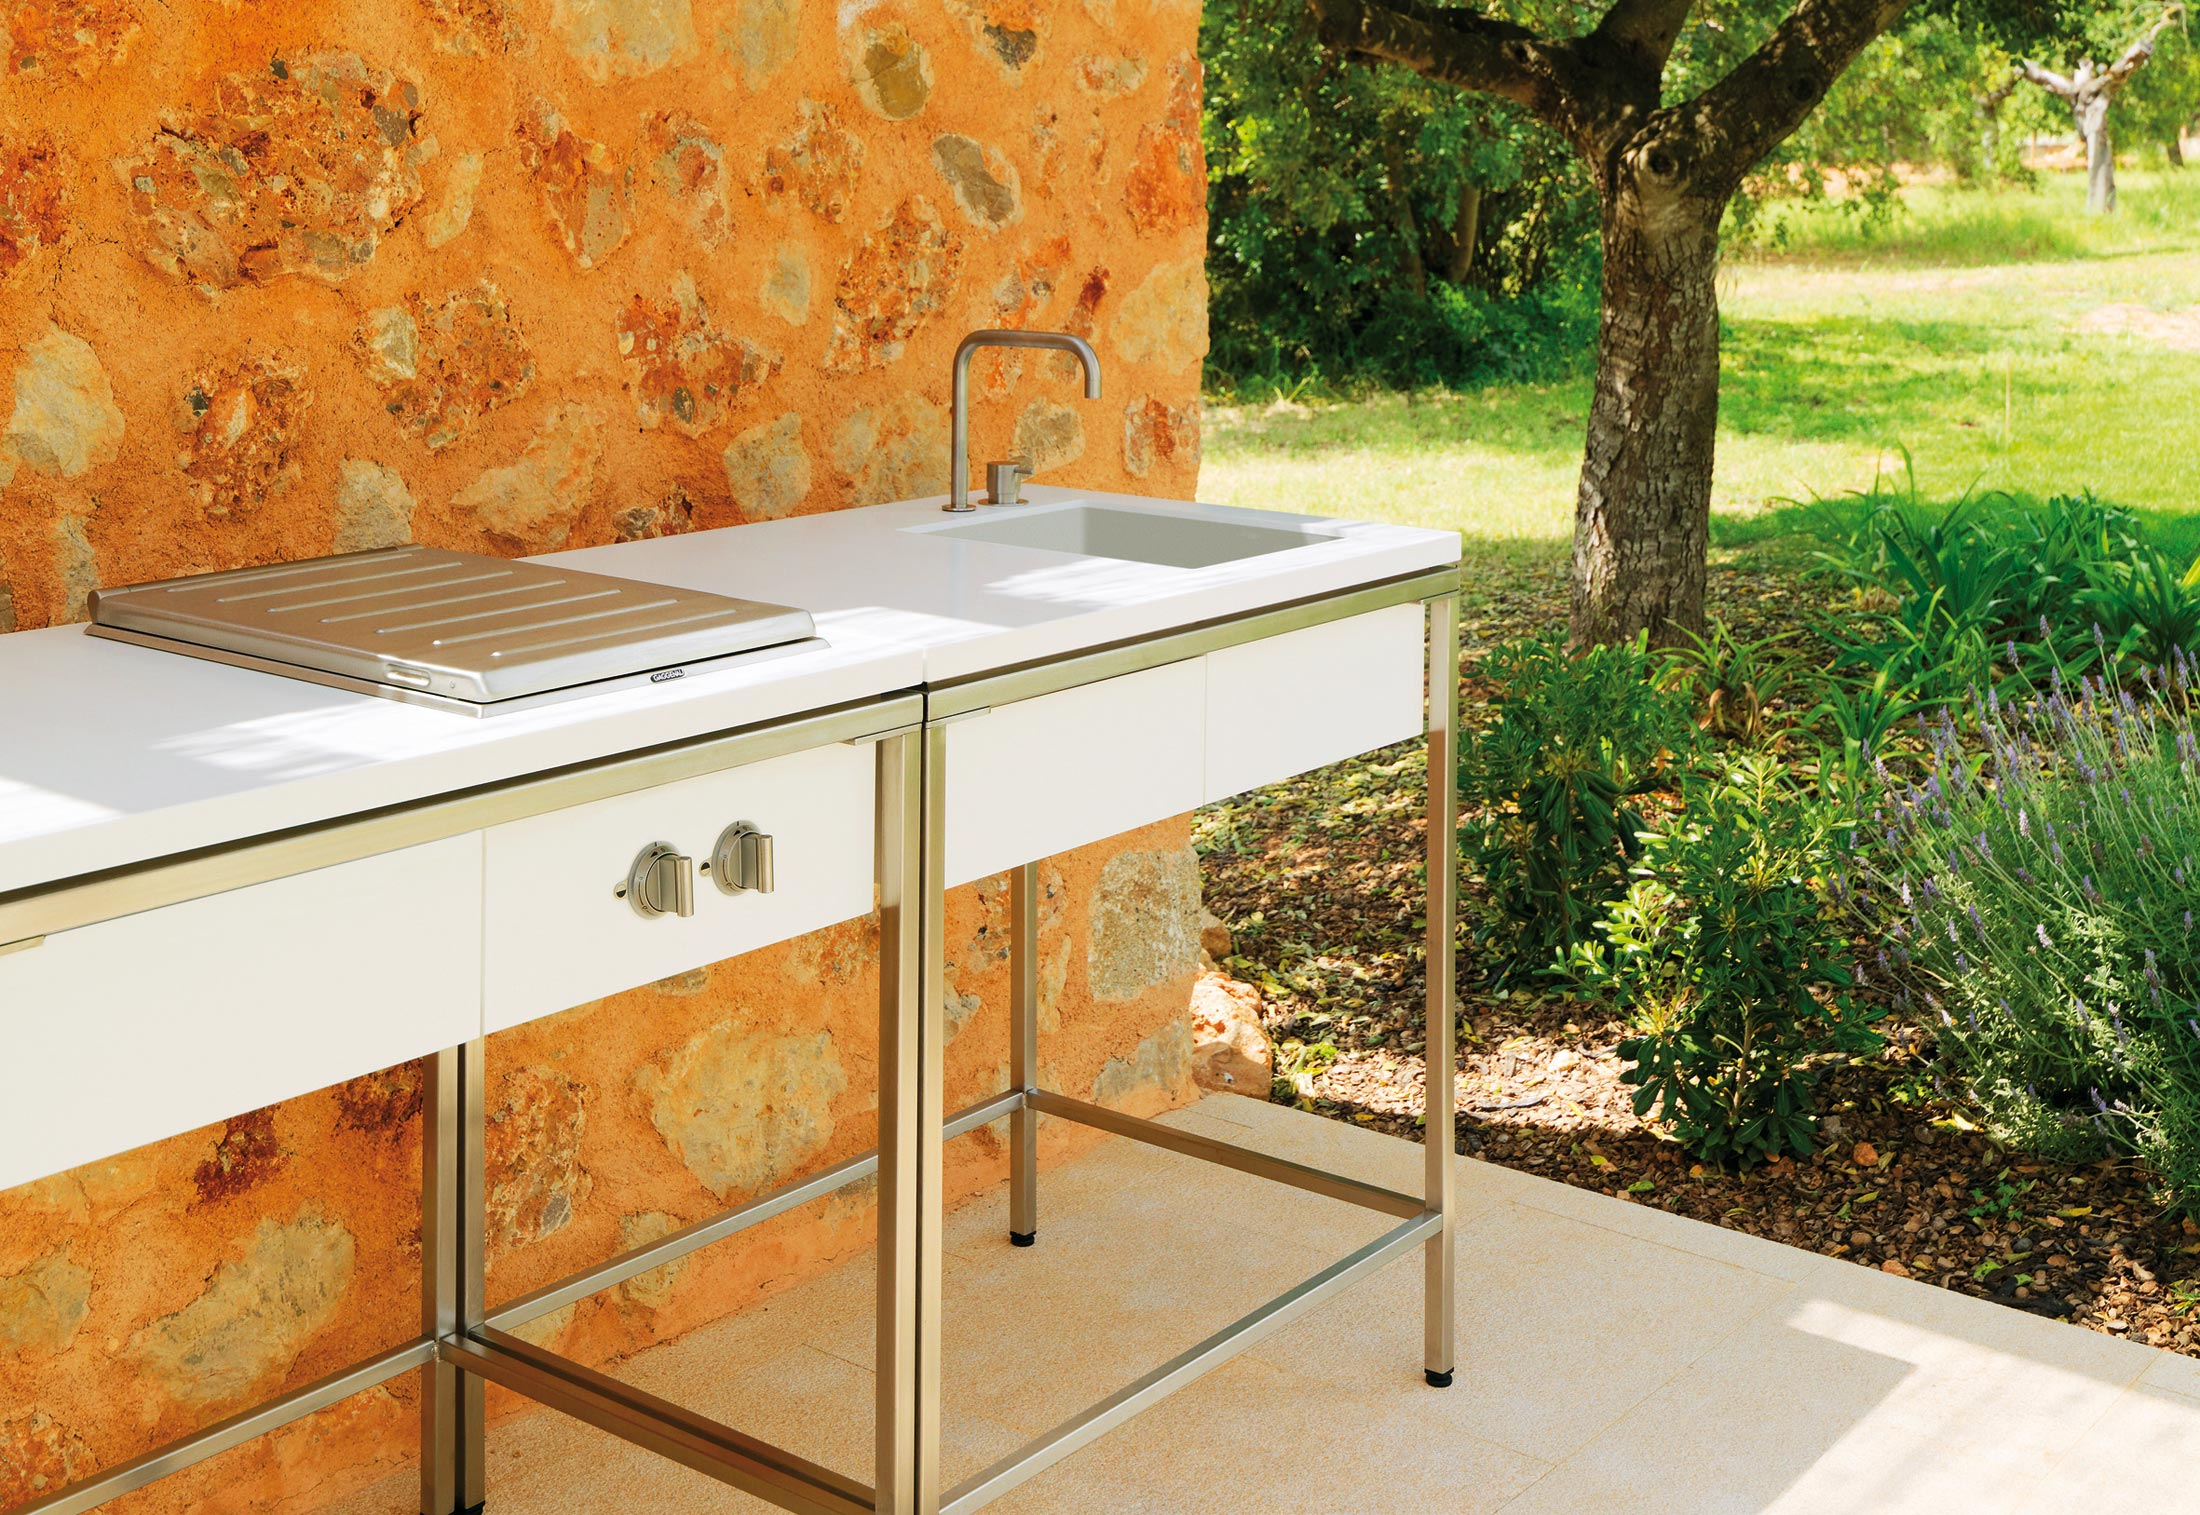 Merveilleux ... Outdoor Kitchen Sink Modul ...